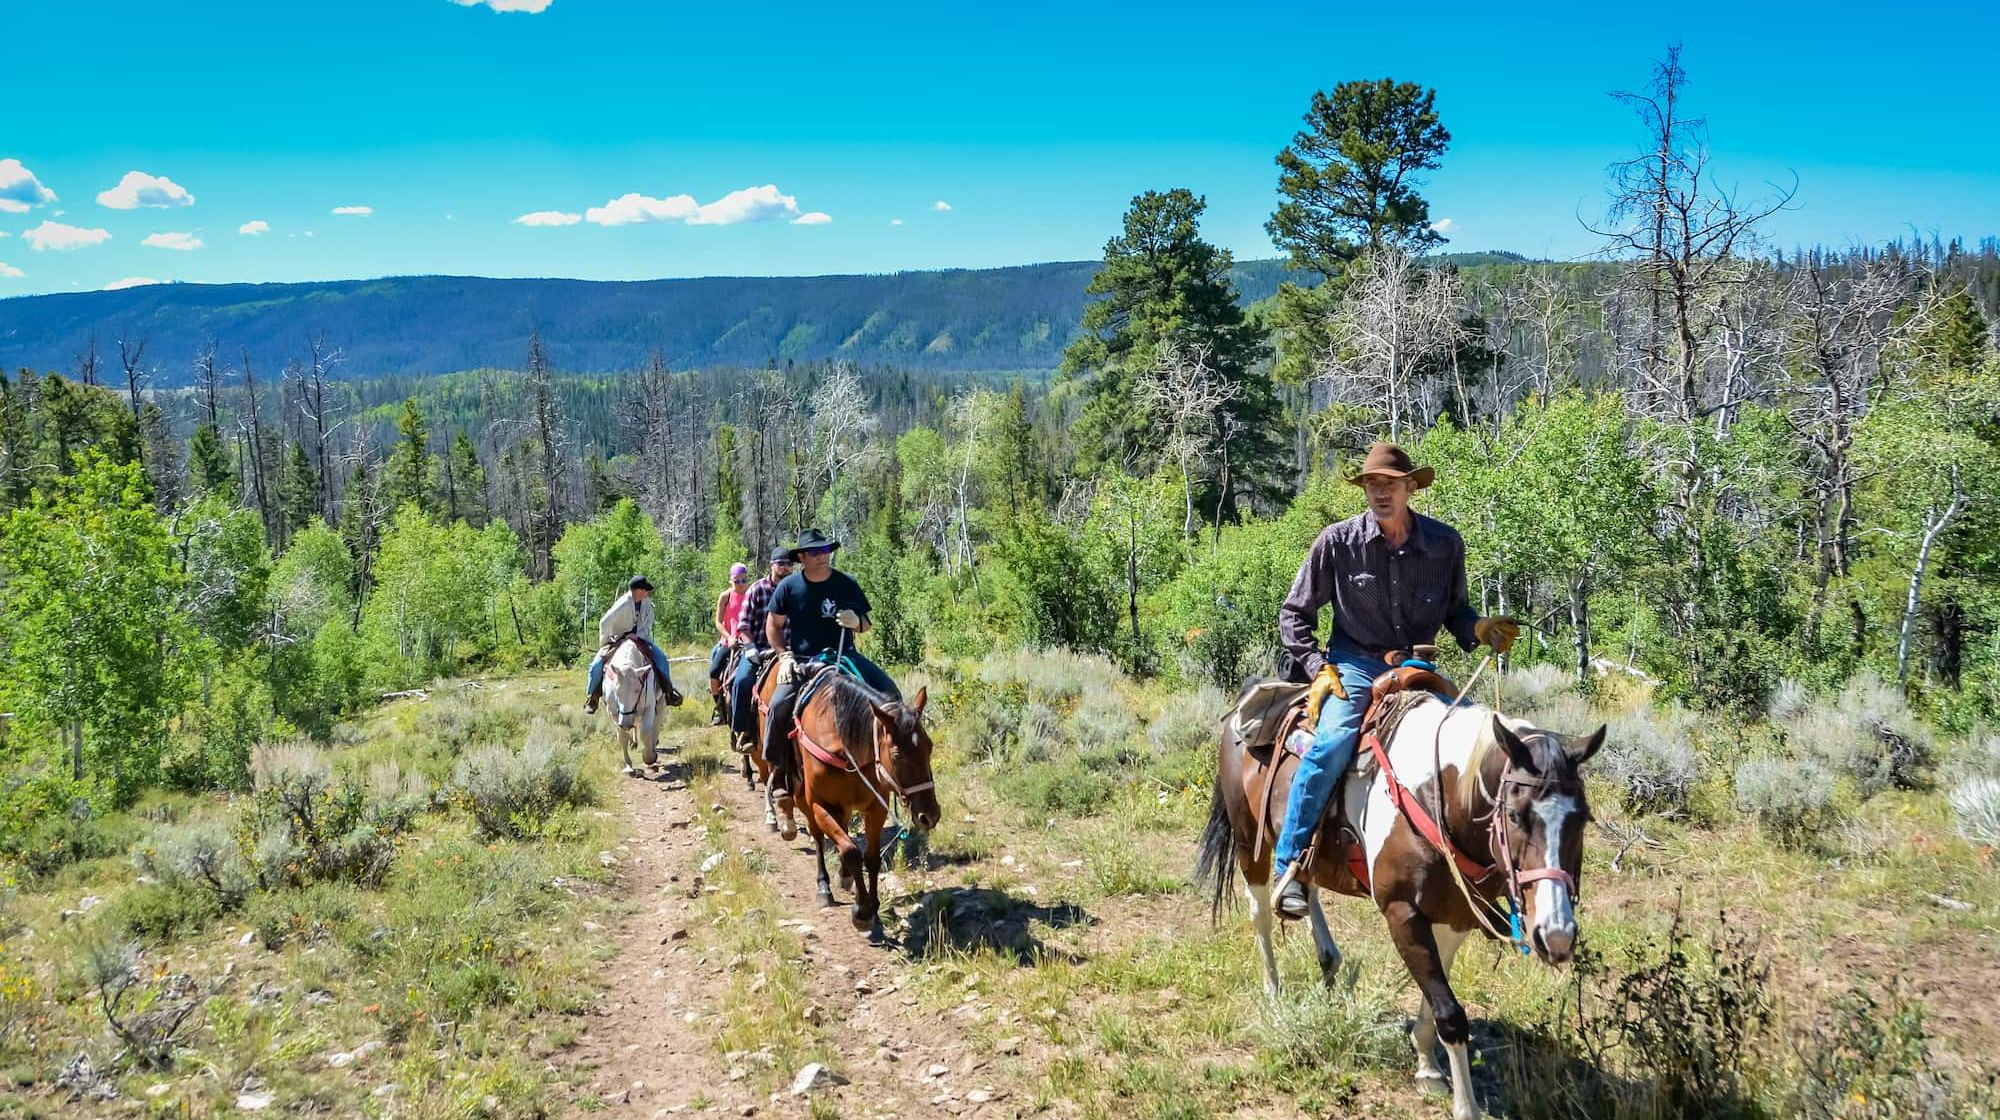 16 Dude Ranch Vacations That Let You Live Your Wild Western